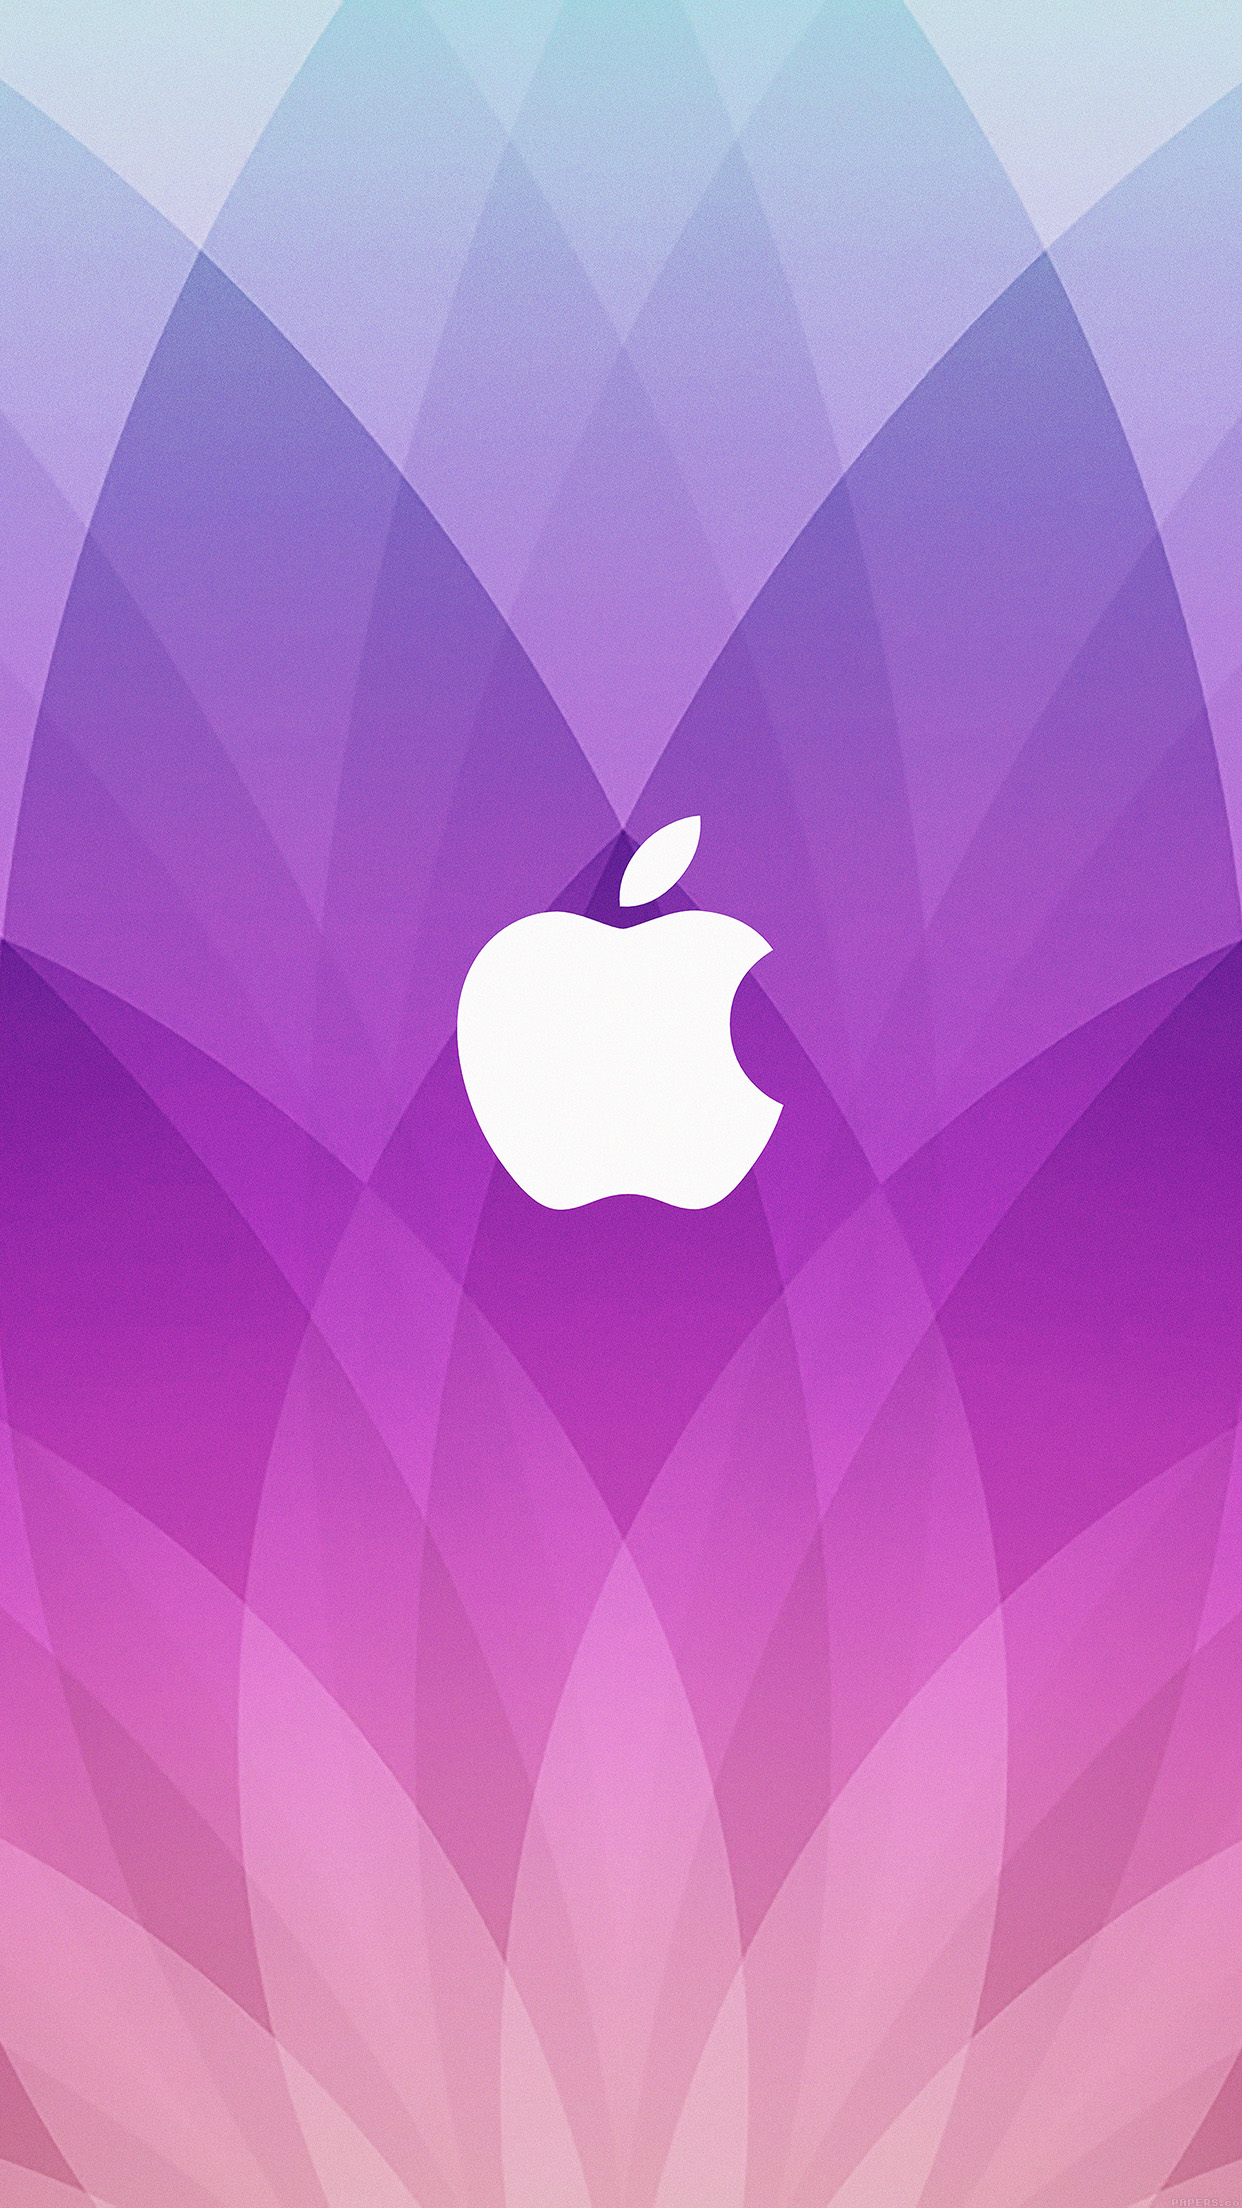 Papers Co Iphone Wallpaper Vh52 Apple Event March 2015